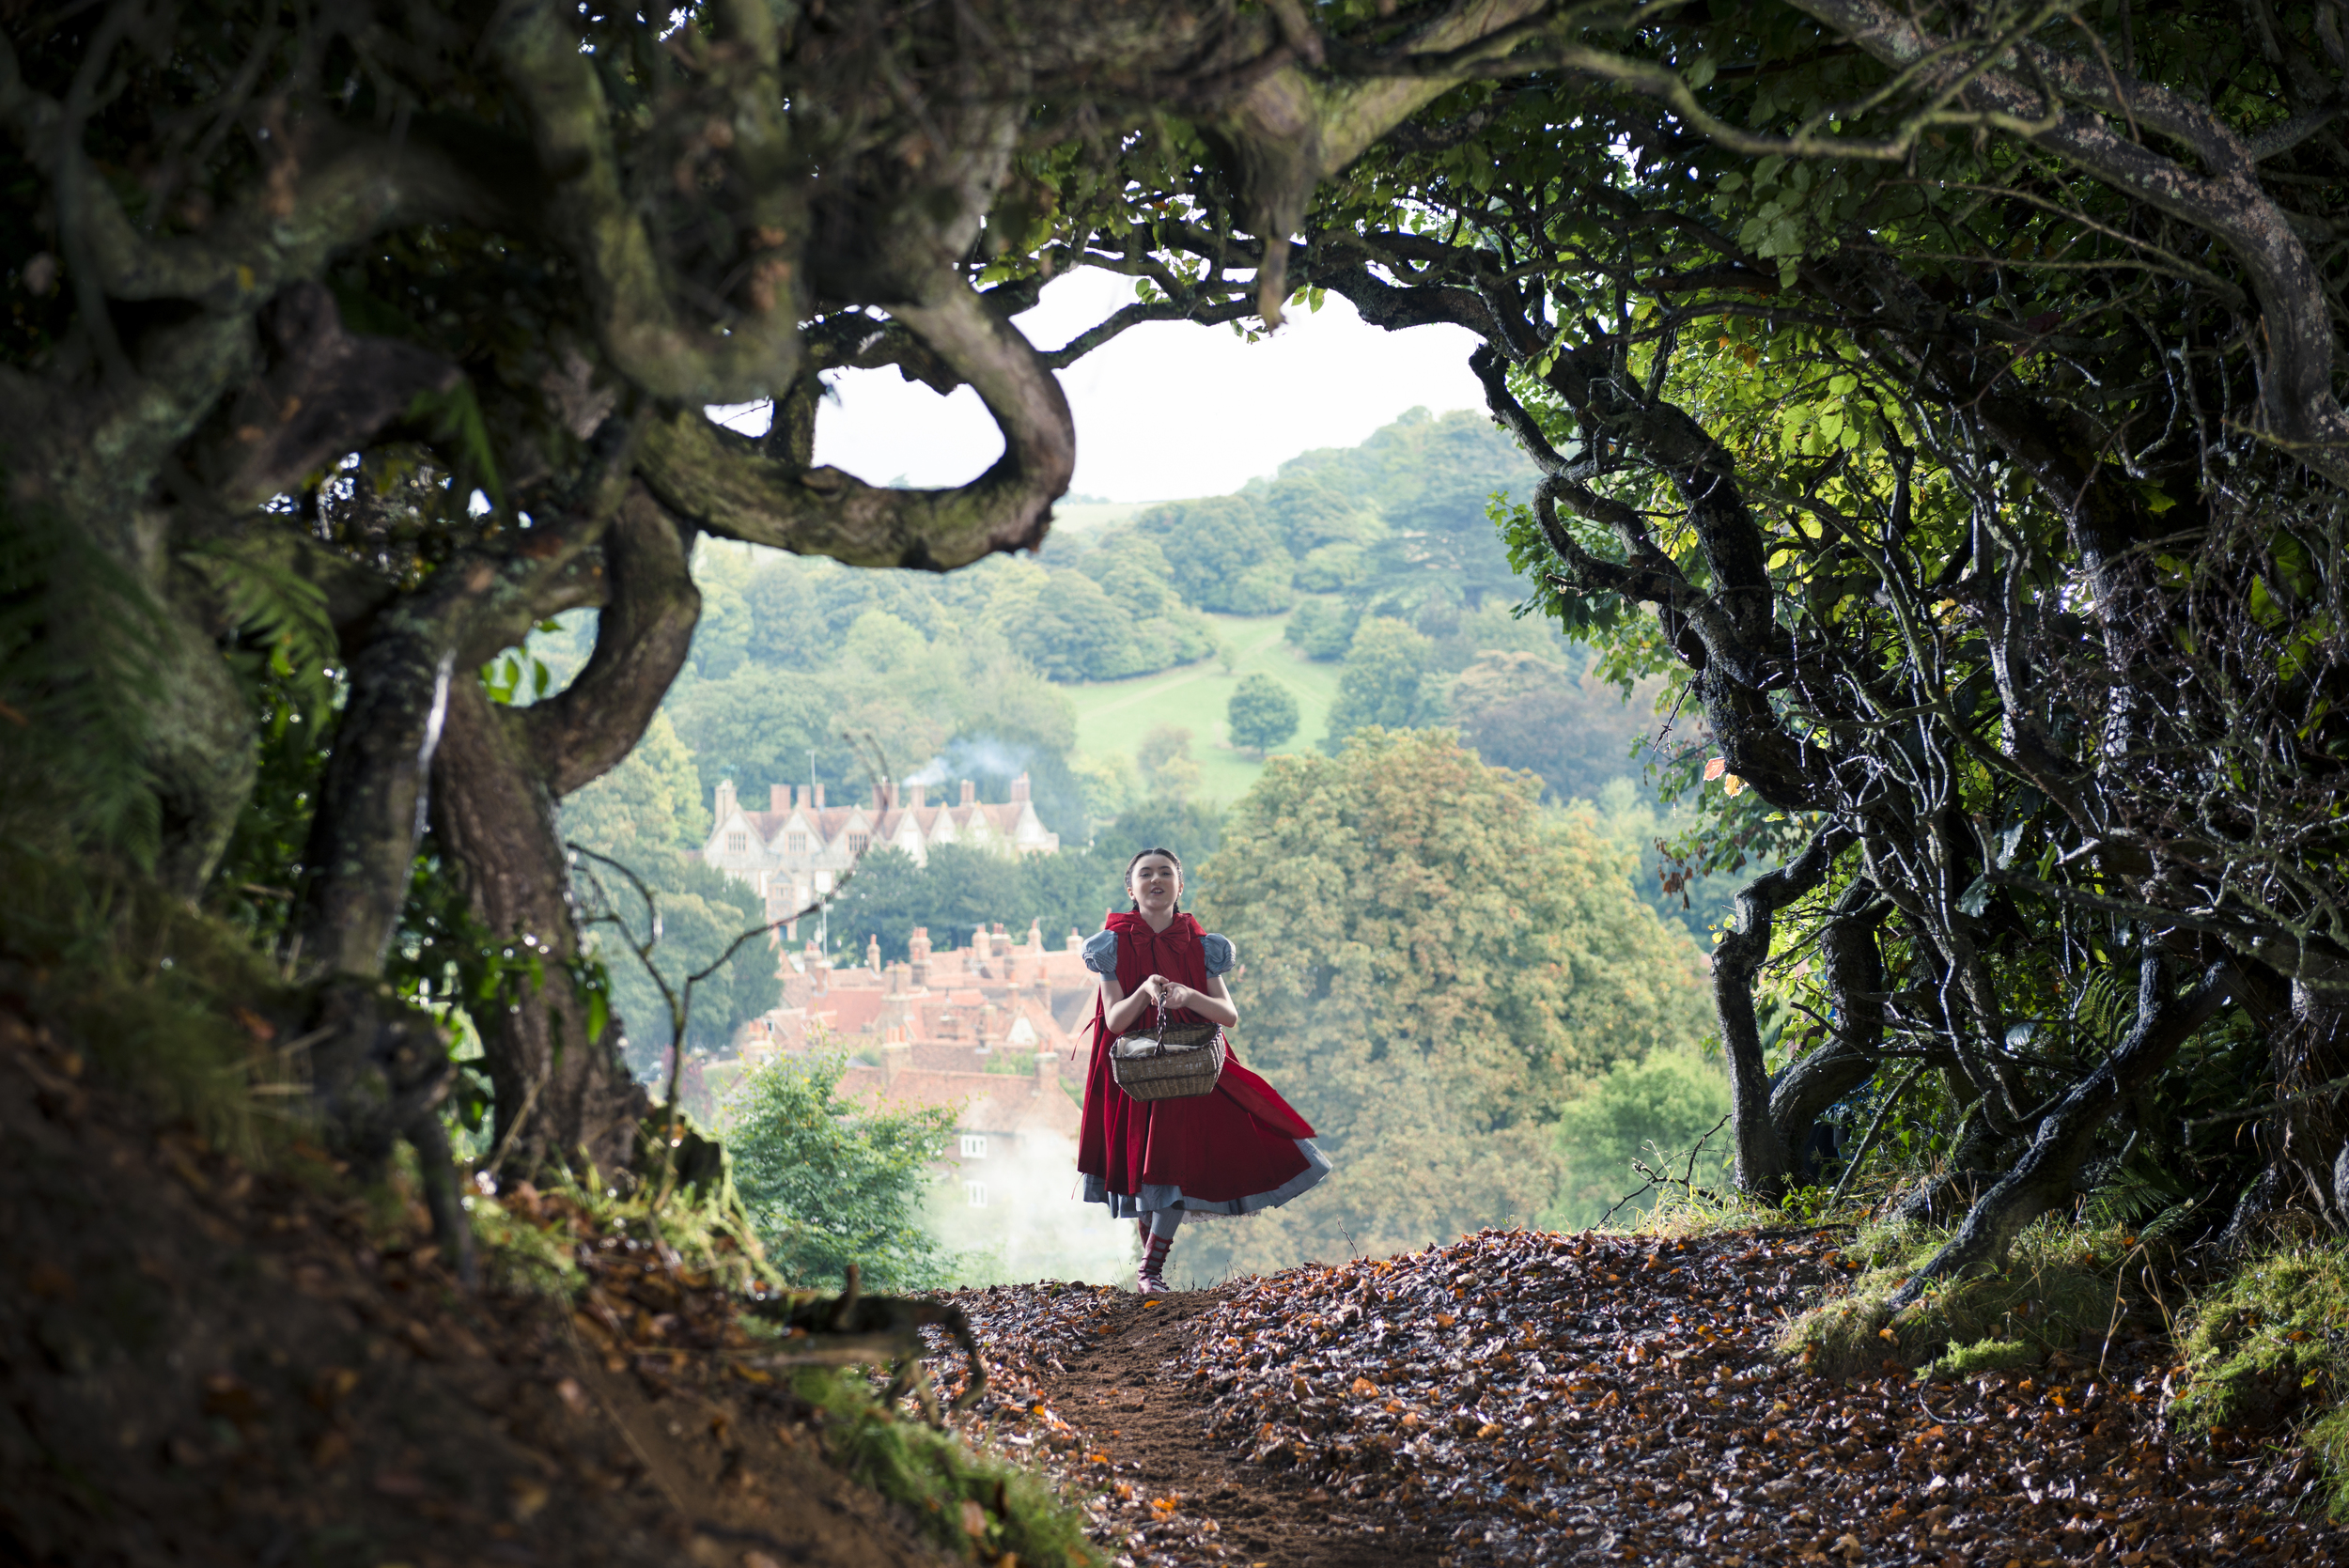 disney-into-the-woods-little-red-riding-hood-preview.jpg